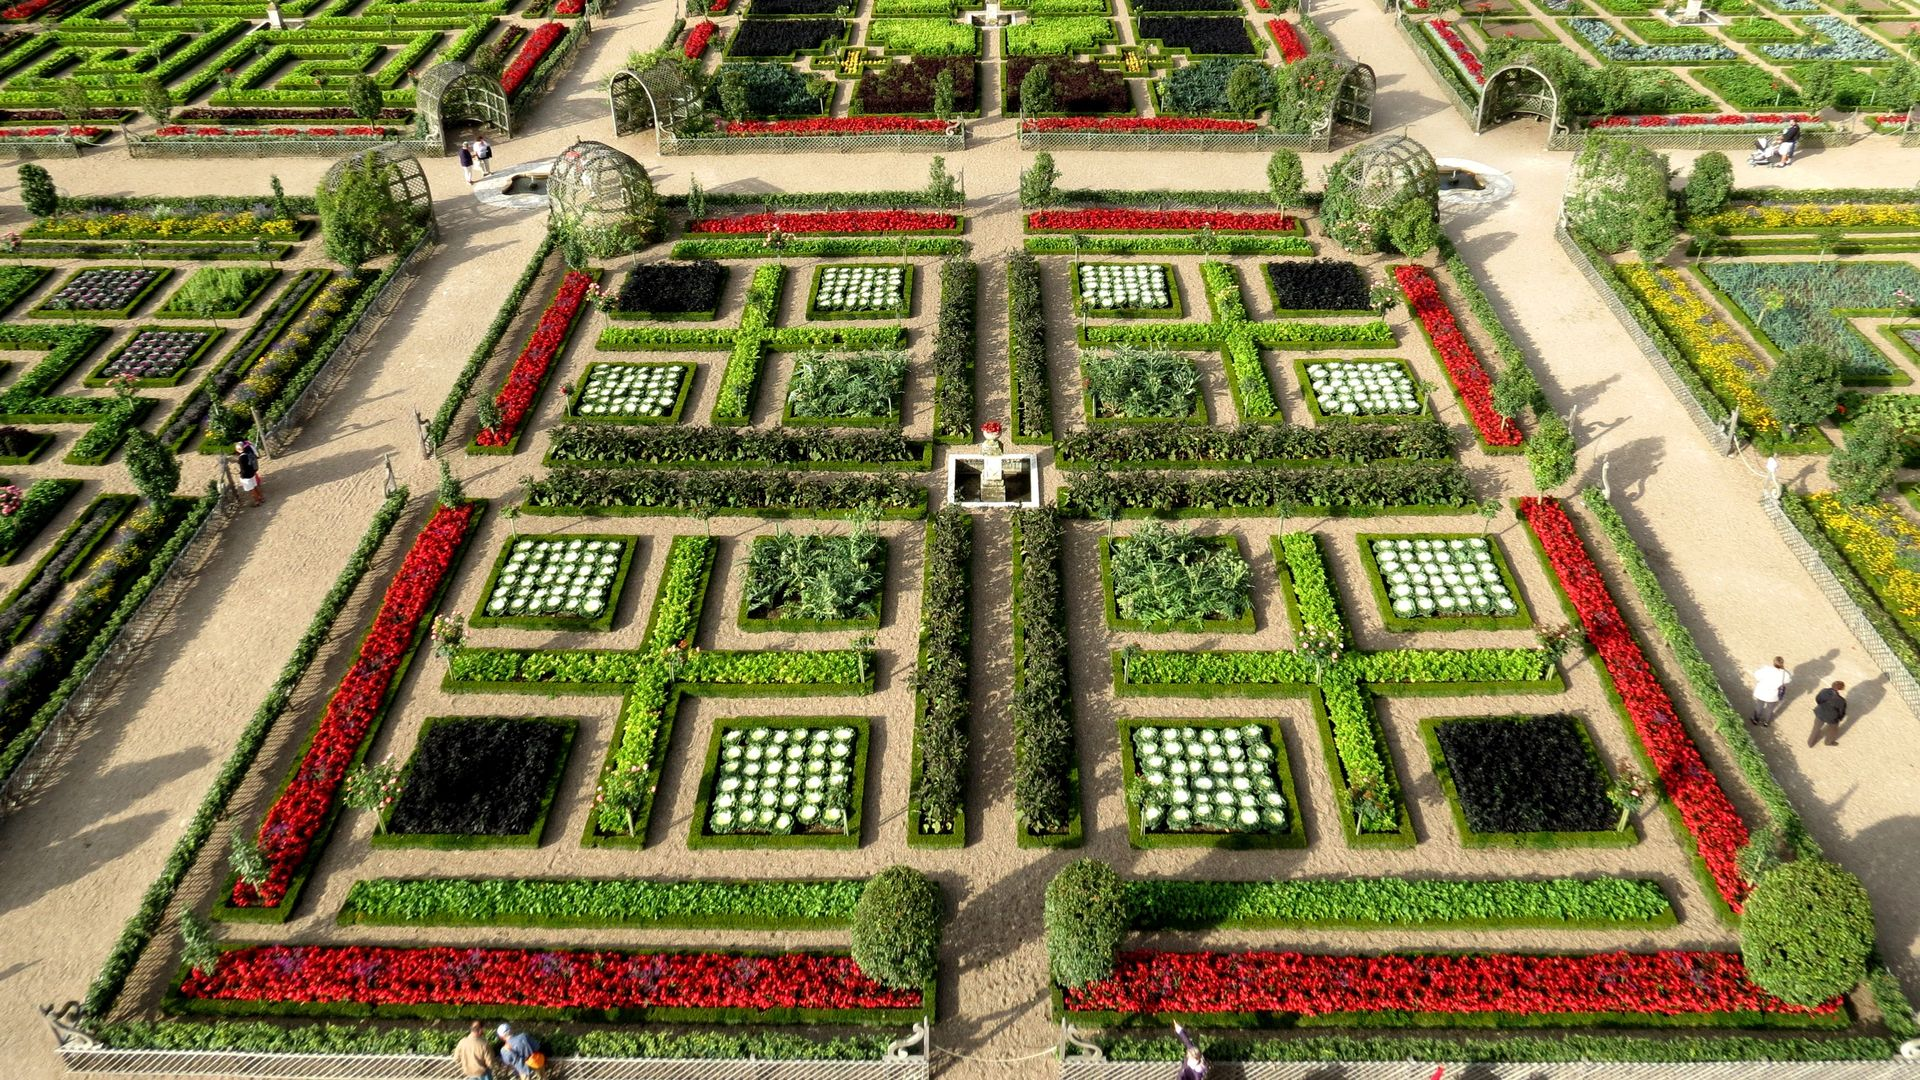 Not To Be Missed The Ornamental Renaissance Vegetable Garden The